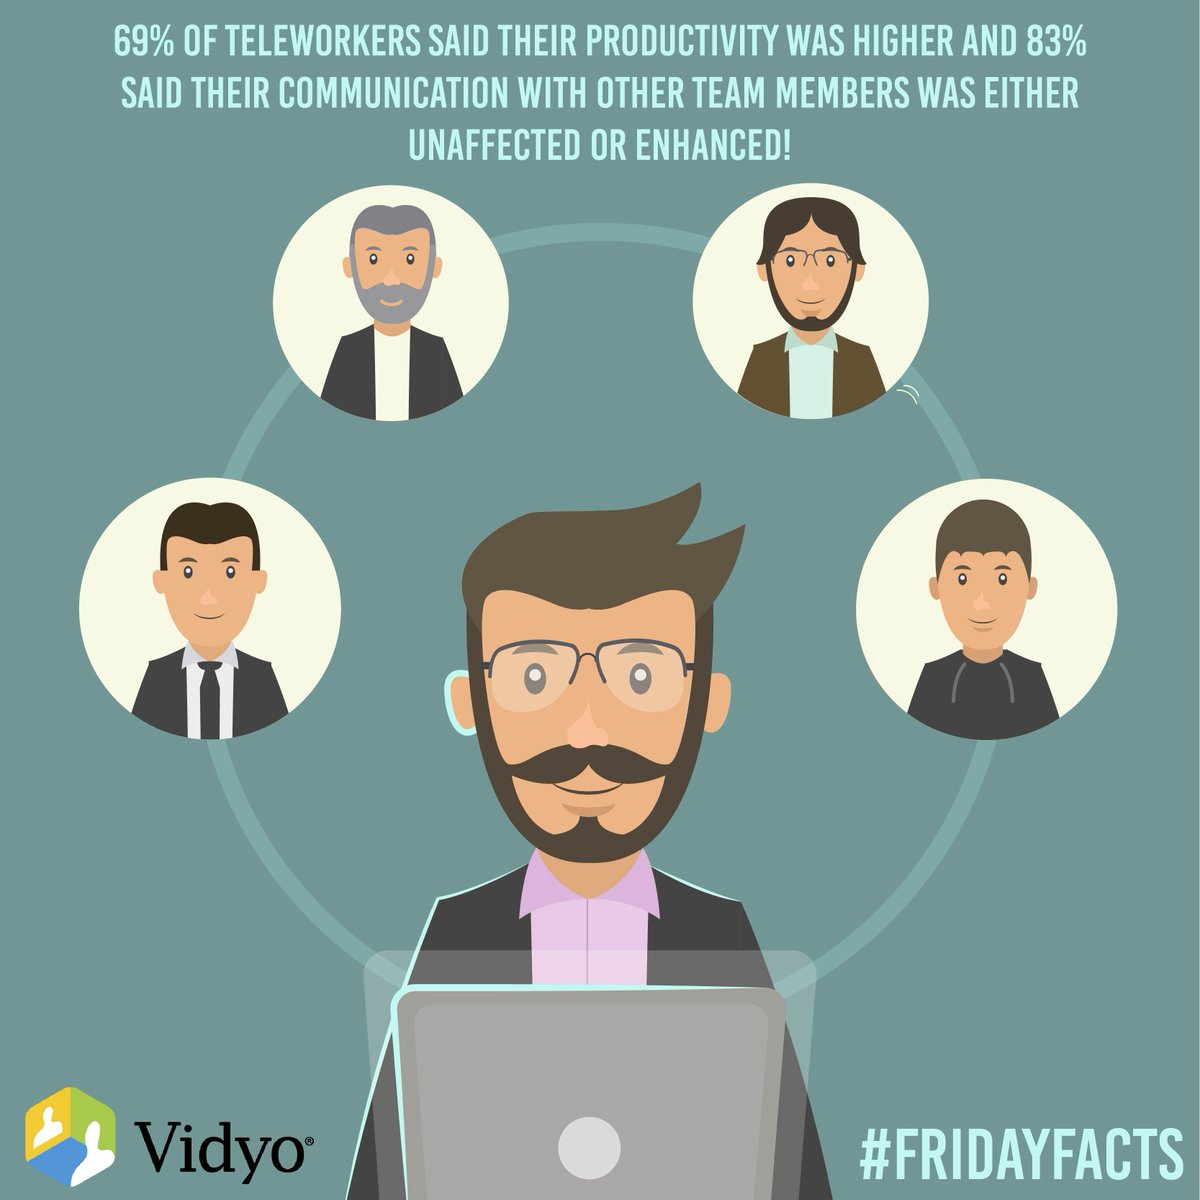 Virtual teams can outperform face-to-face teams utilizing tools like Vidyo! #funfactfridays #qualitymatters https://t.co/Rt09hsLdJU